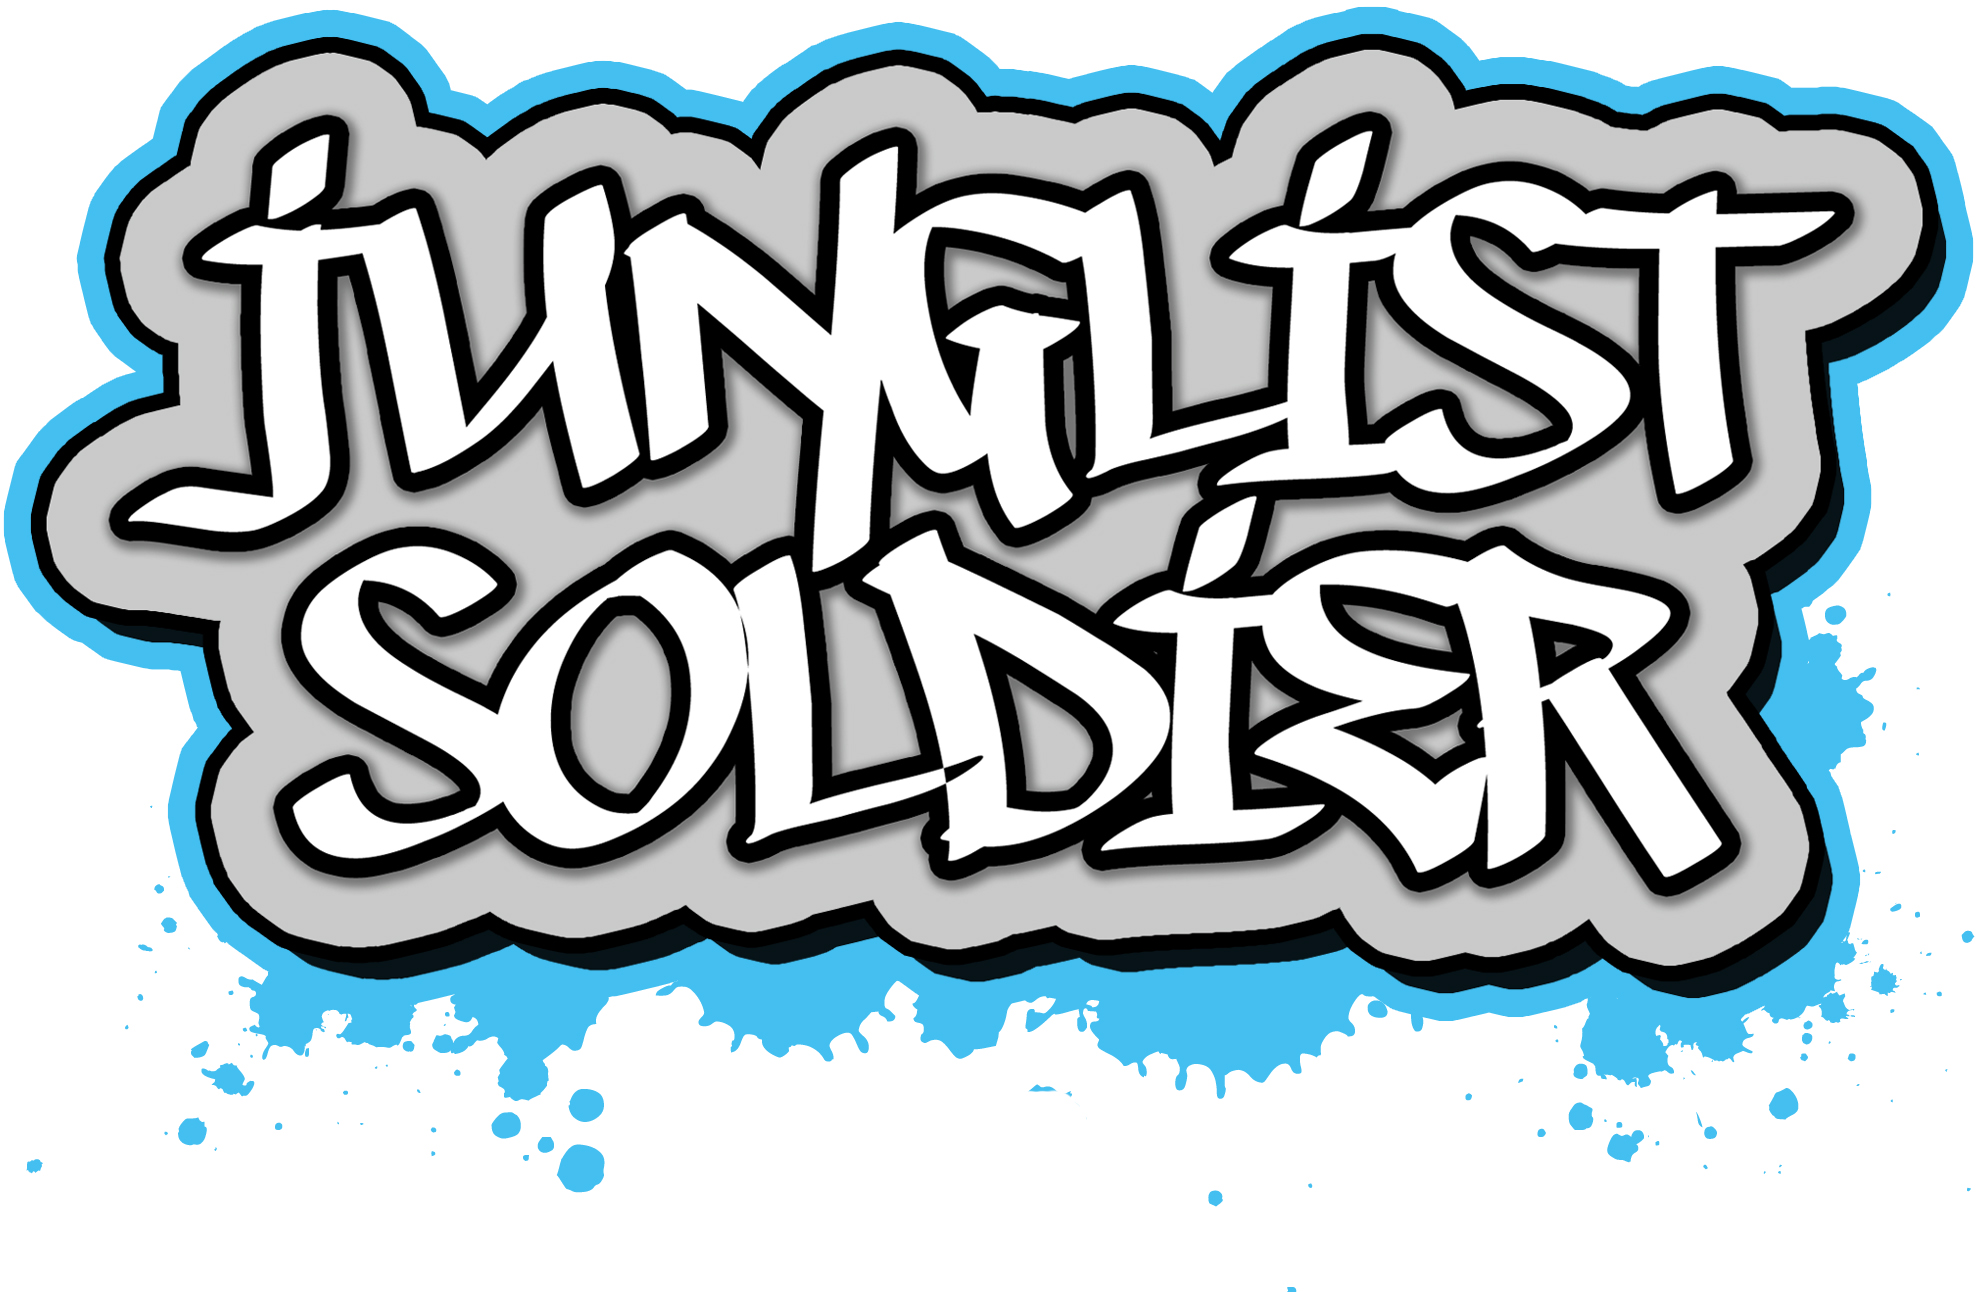 Junglist Soldier Clothing